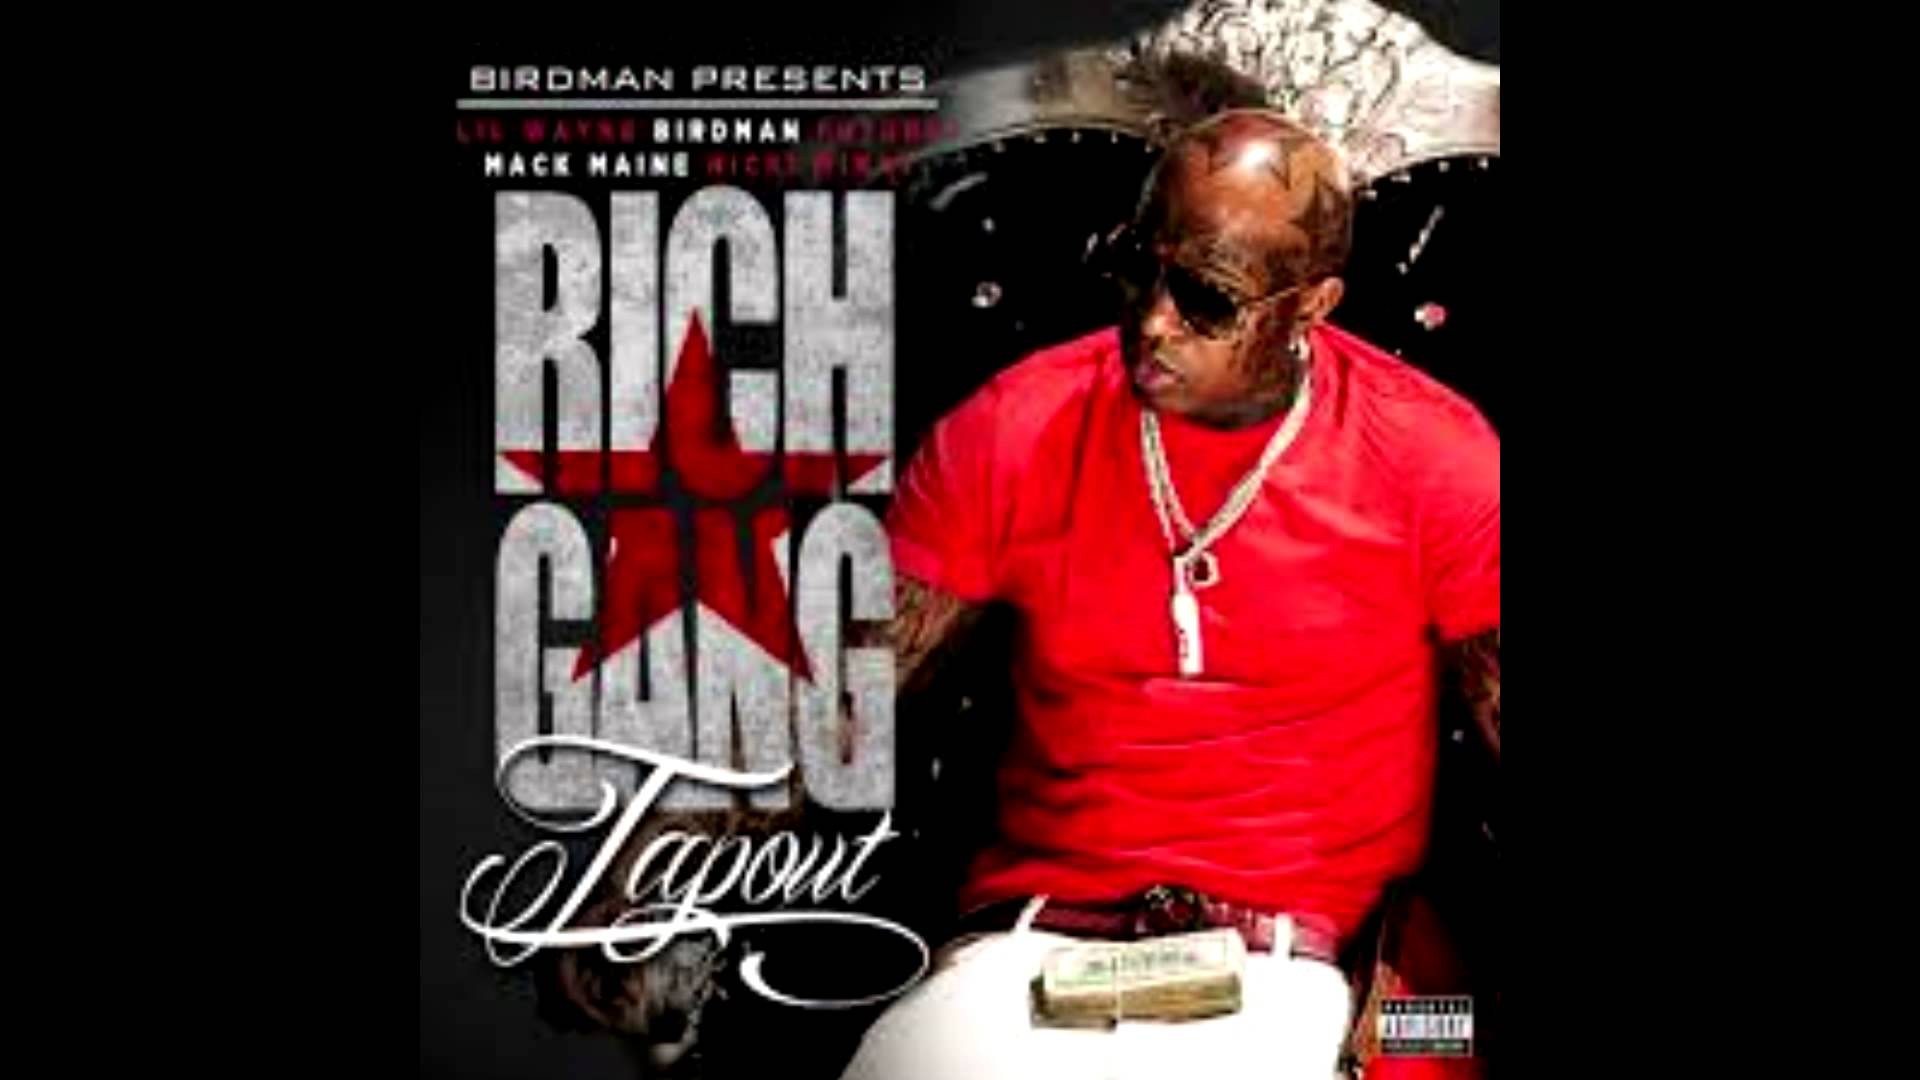 rich gang rich gang logo rich gang rg logo rich gang album rich gang 1920x1080